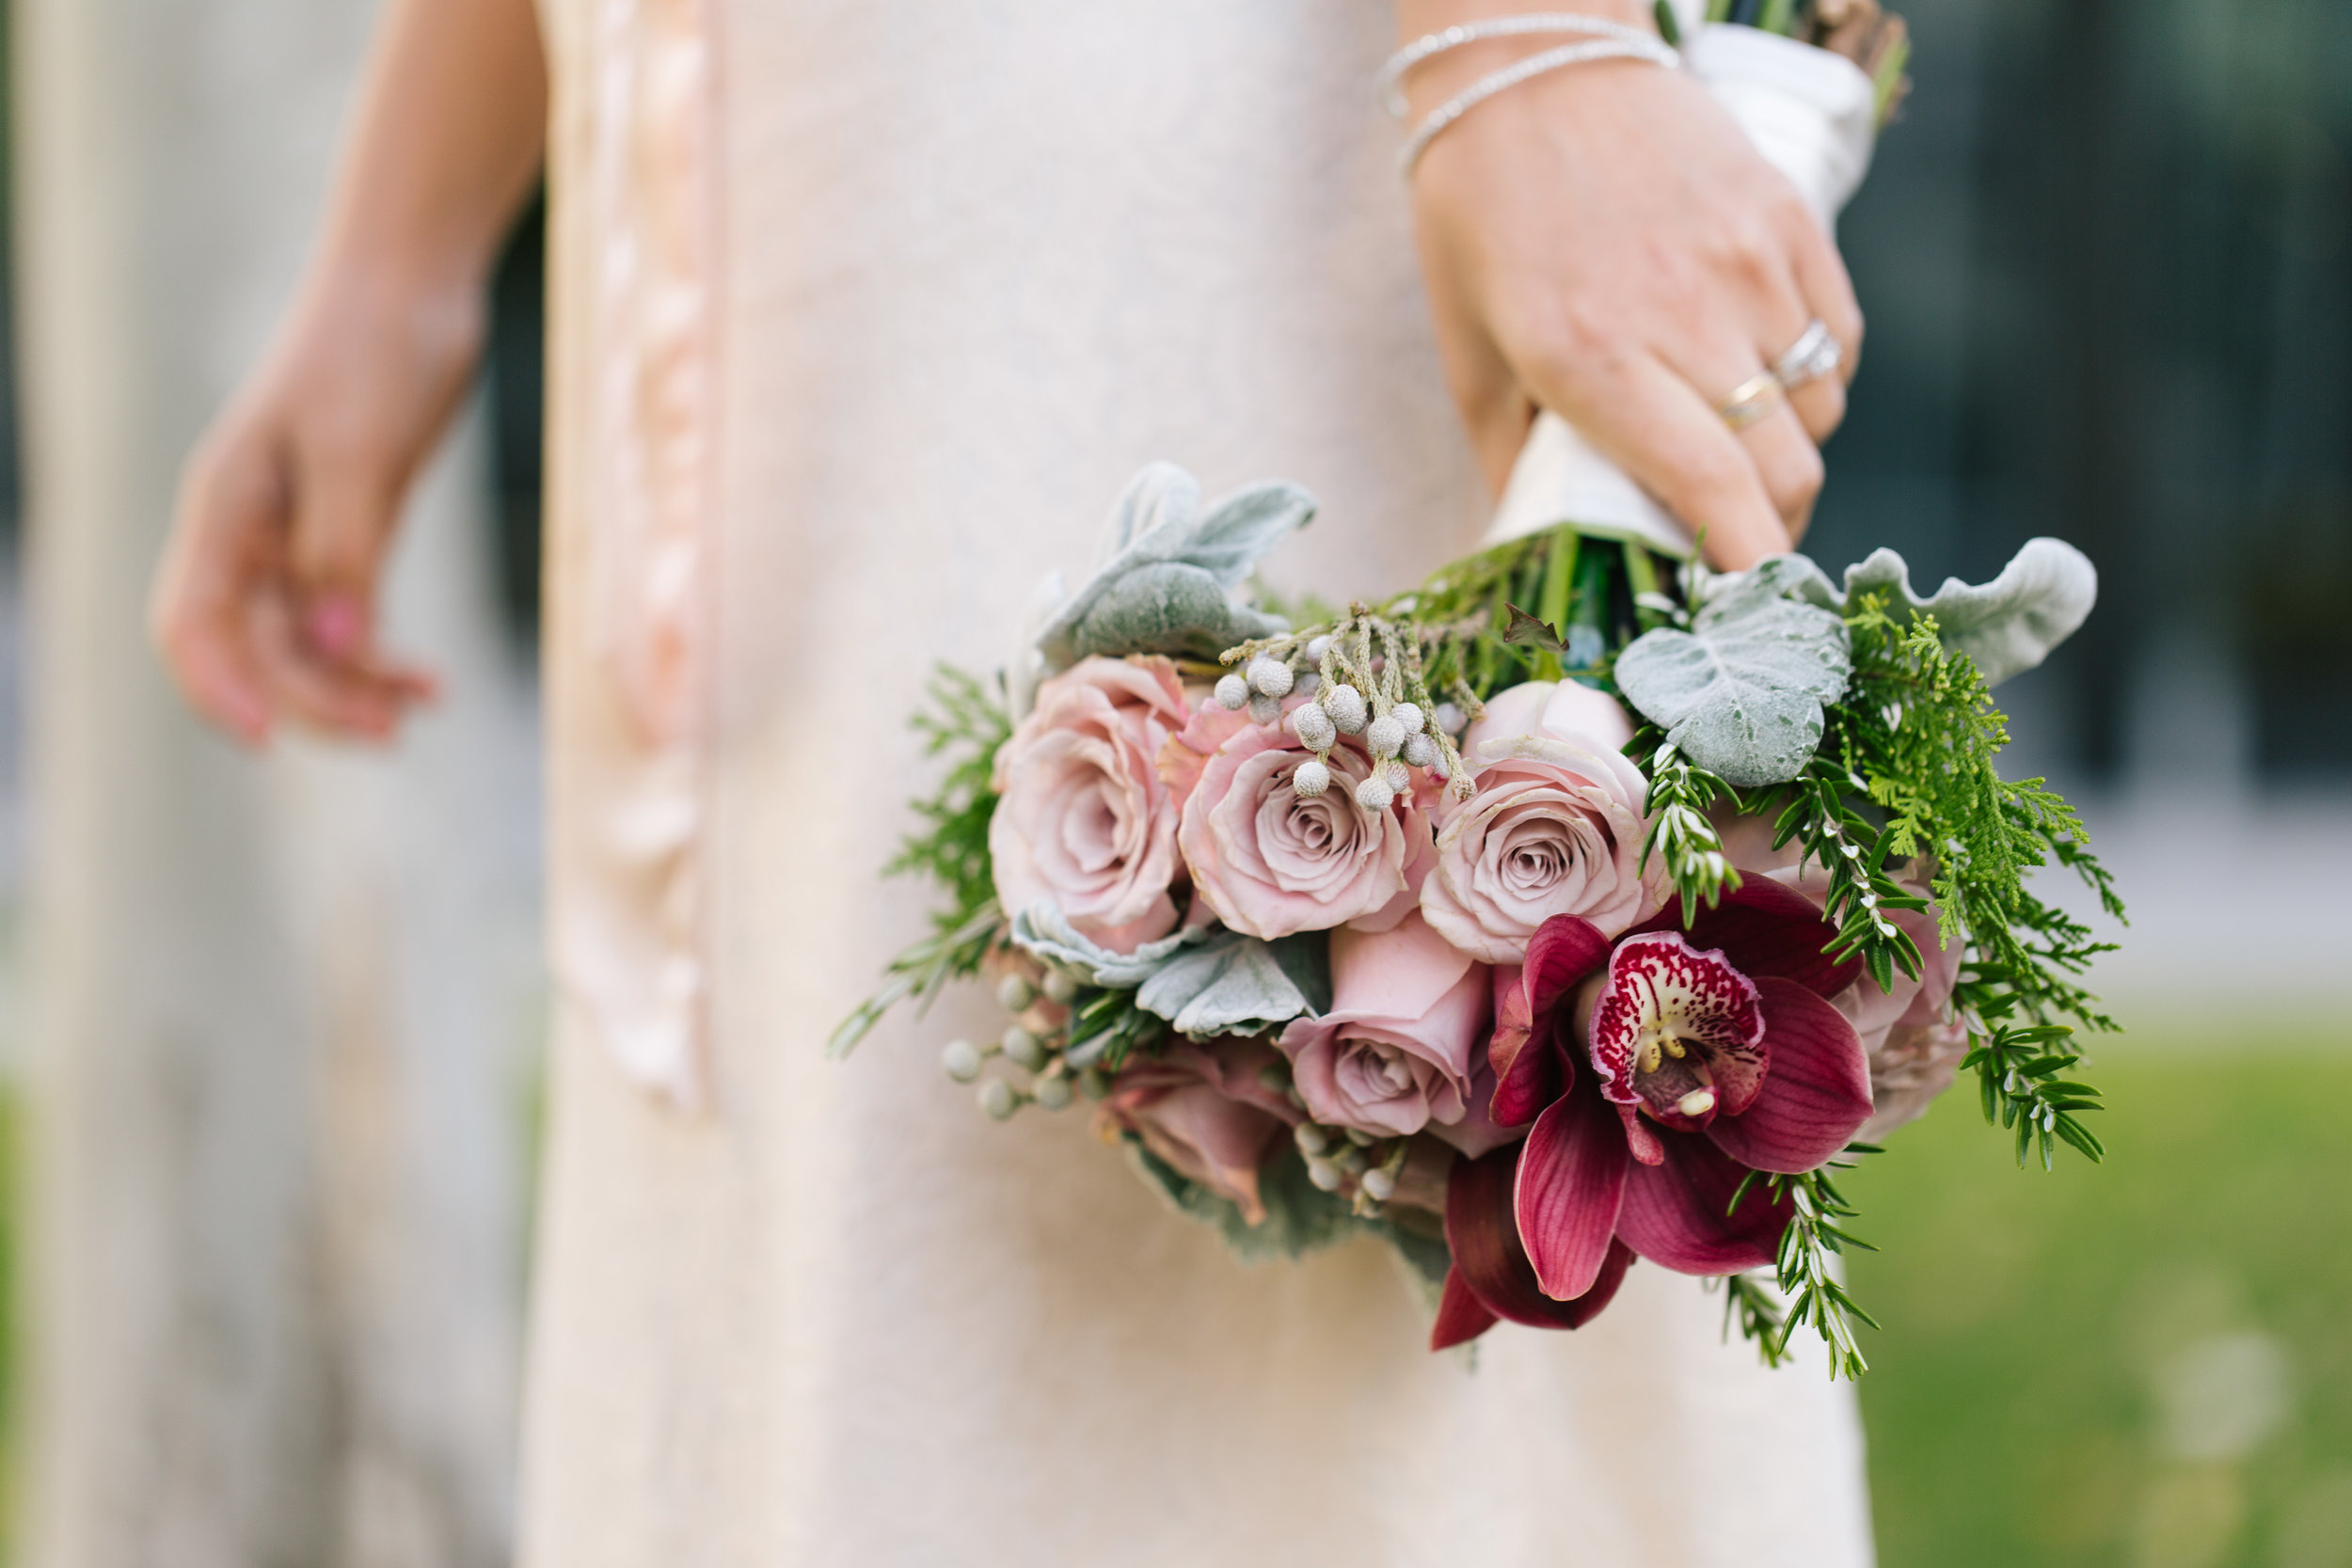 Beautiful wedding florals by Winston Flowers - Edin and Vanessa's intimate Cambridge City Hall wedding